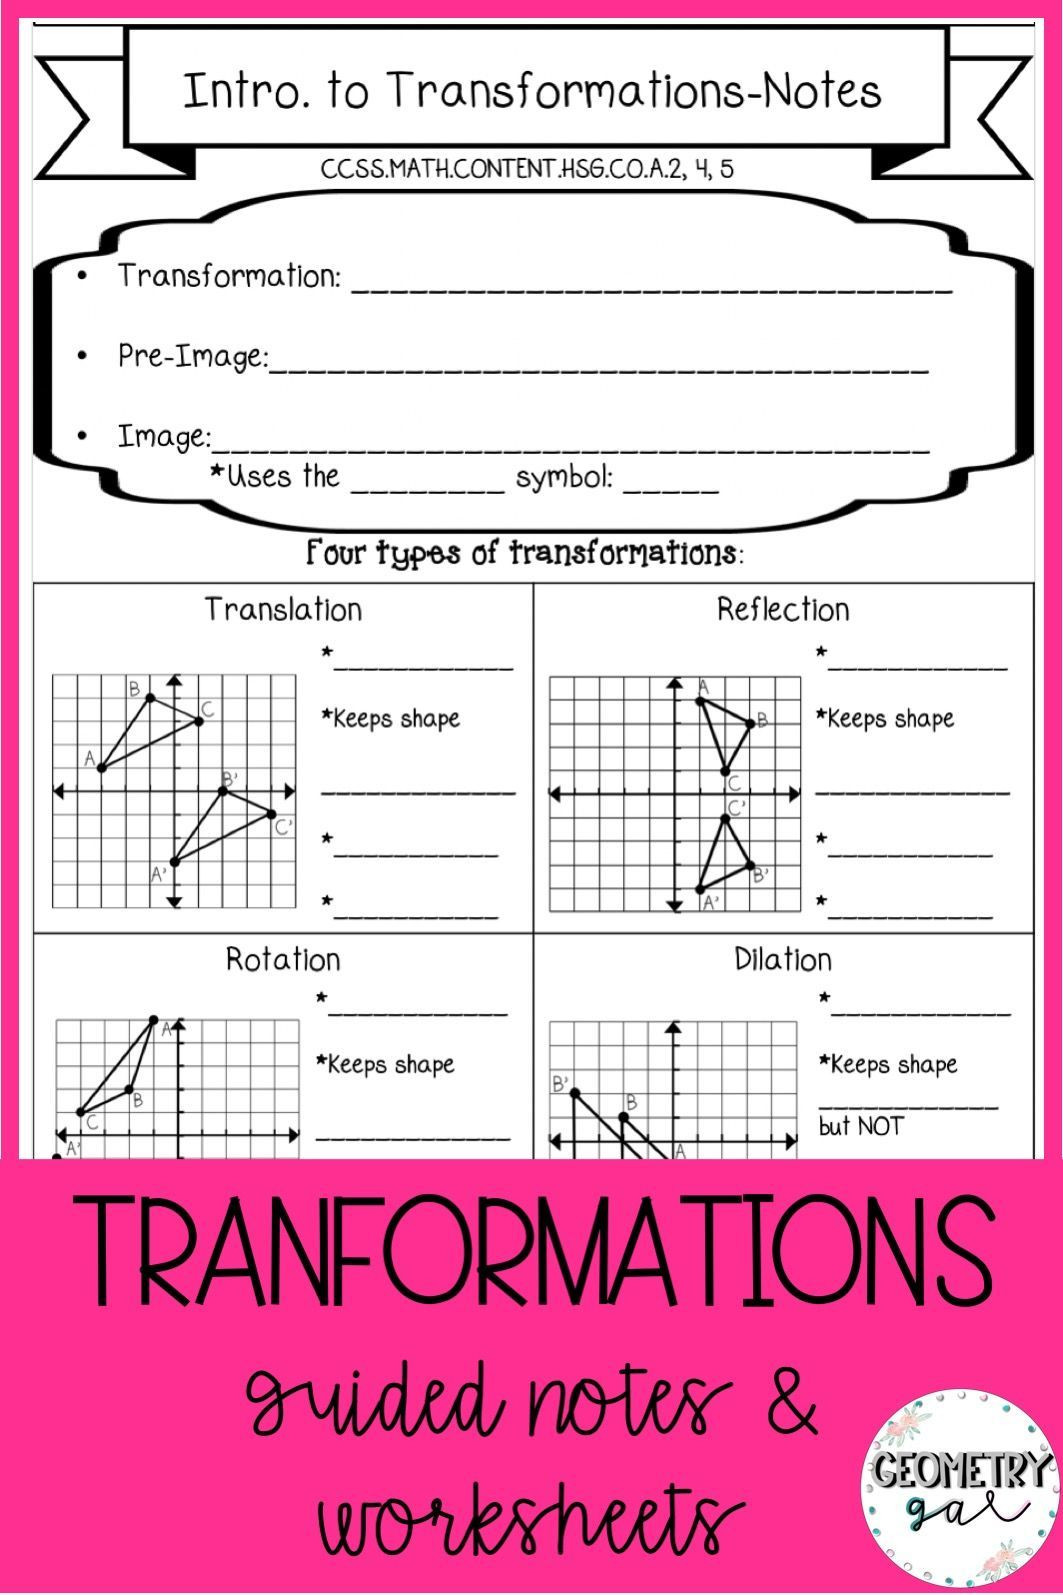 30 Translations Reflections And Rotations Worksheet